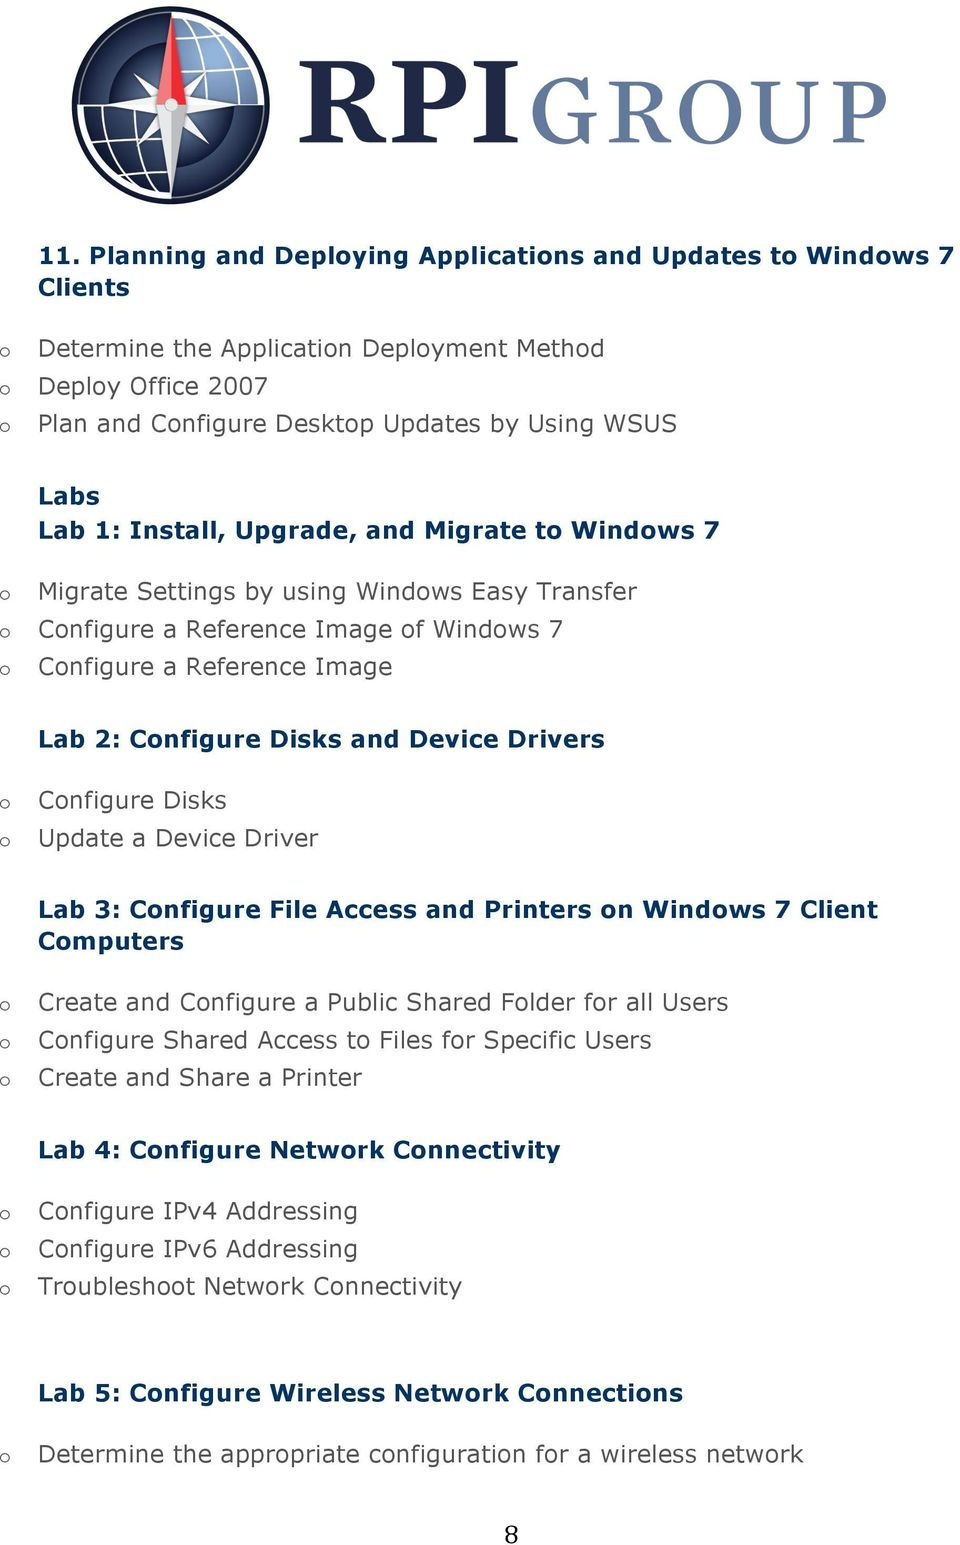 Update a Device Driver Lab 3: Cnfigure File Access and Printers n Windws 7 Client Cmputers Create and Cnfigure a Public Shared Flder fr all Users Cnfigure Shared Access t Files fr Specific Users